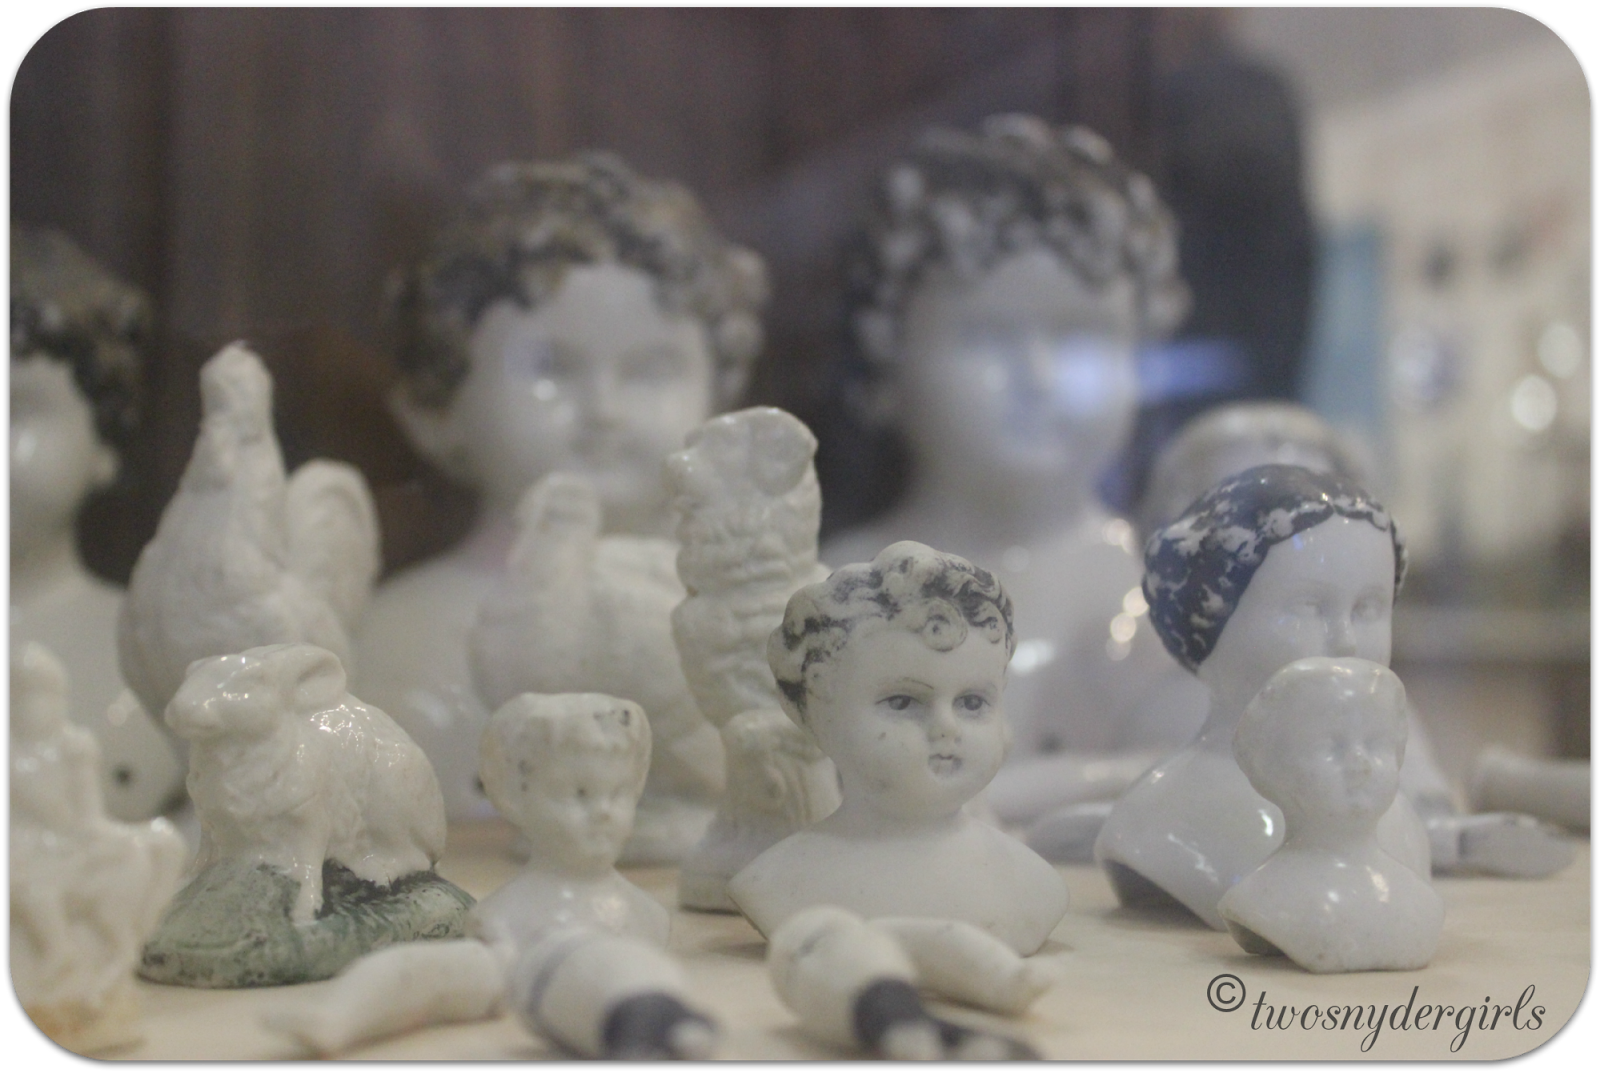 Porcelain dolls found in shipwrecks